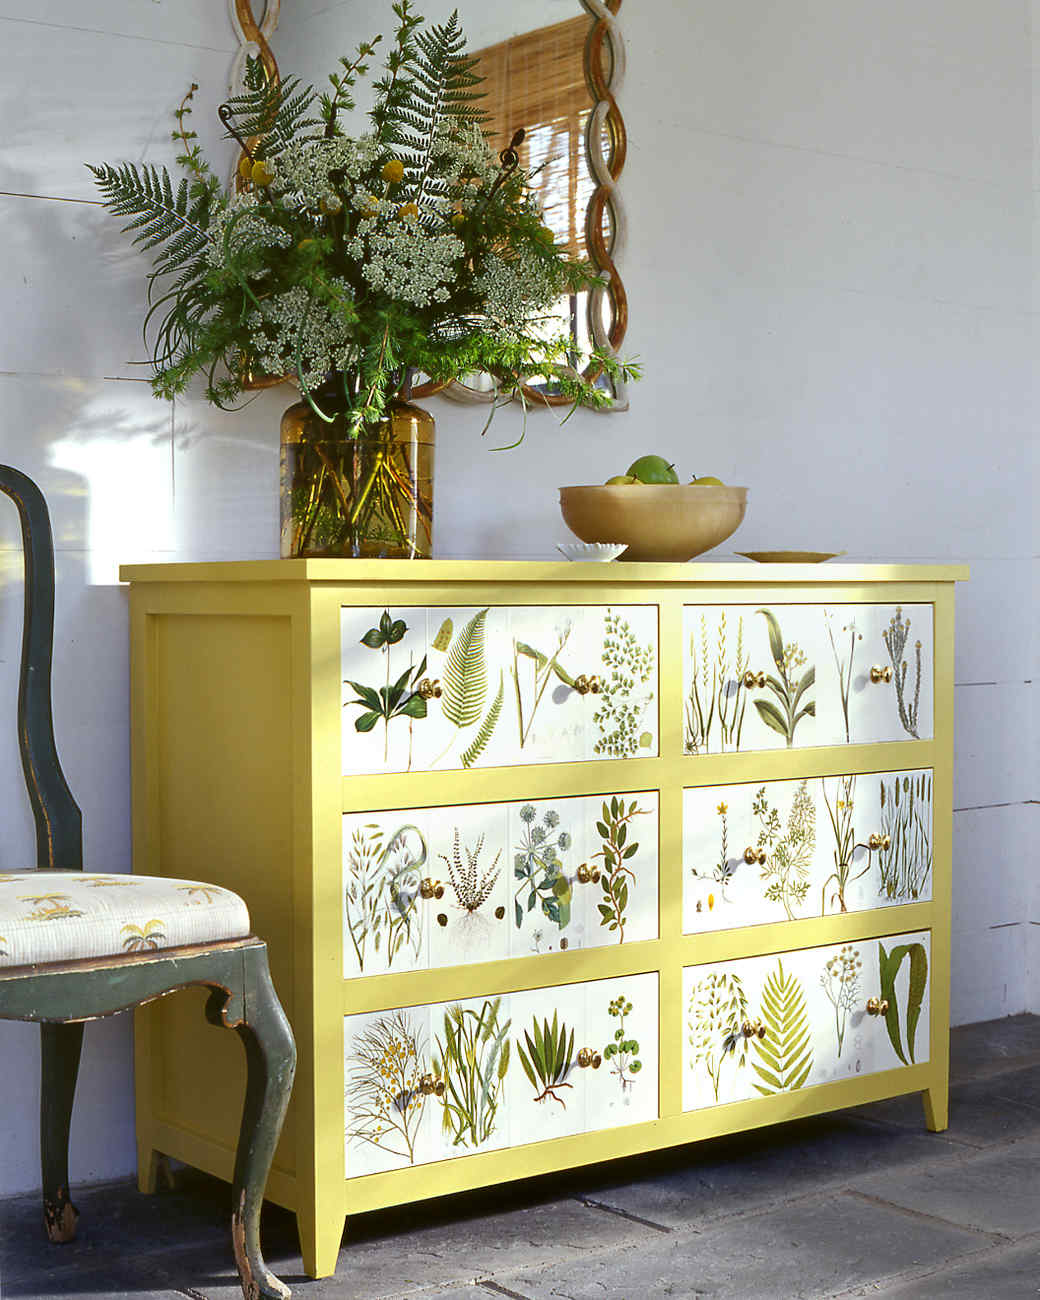 Ikea Möbel Pimpen Blog The Magic Of Decoupage | Martha Stewart